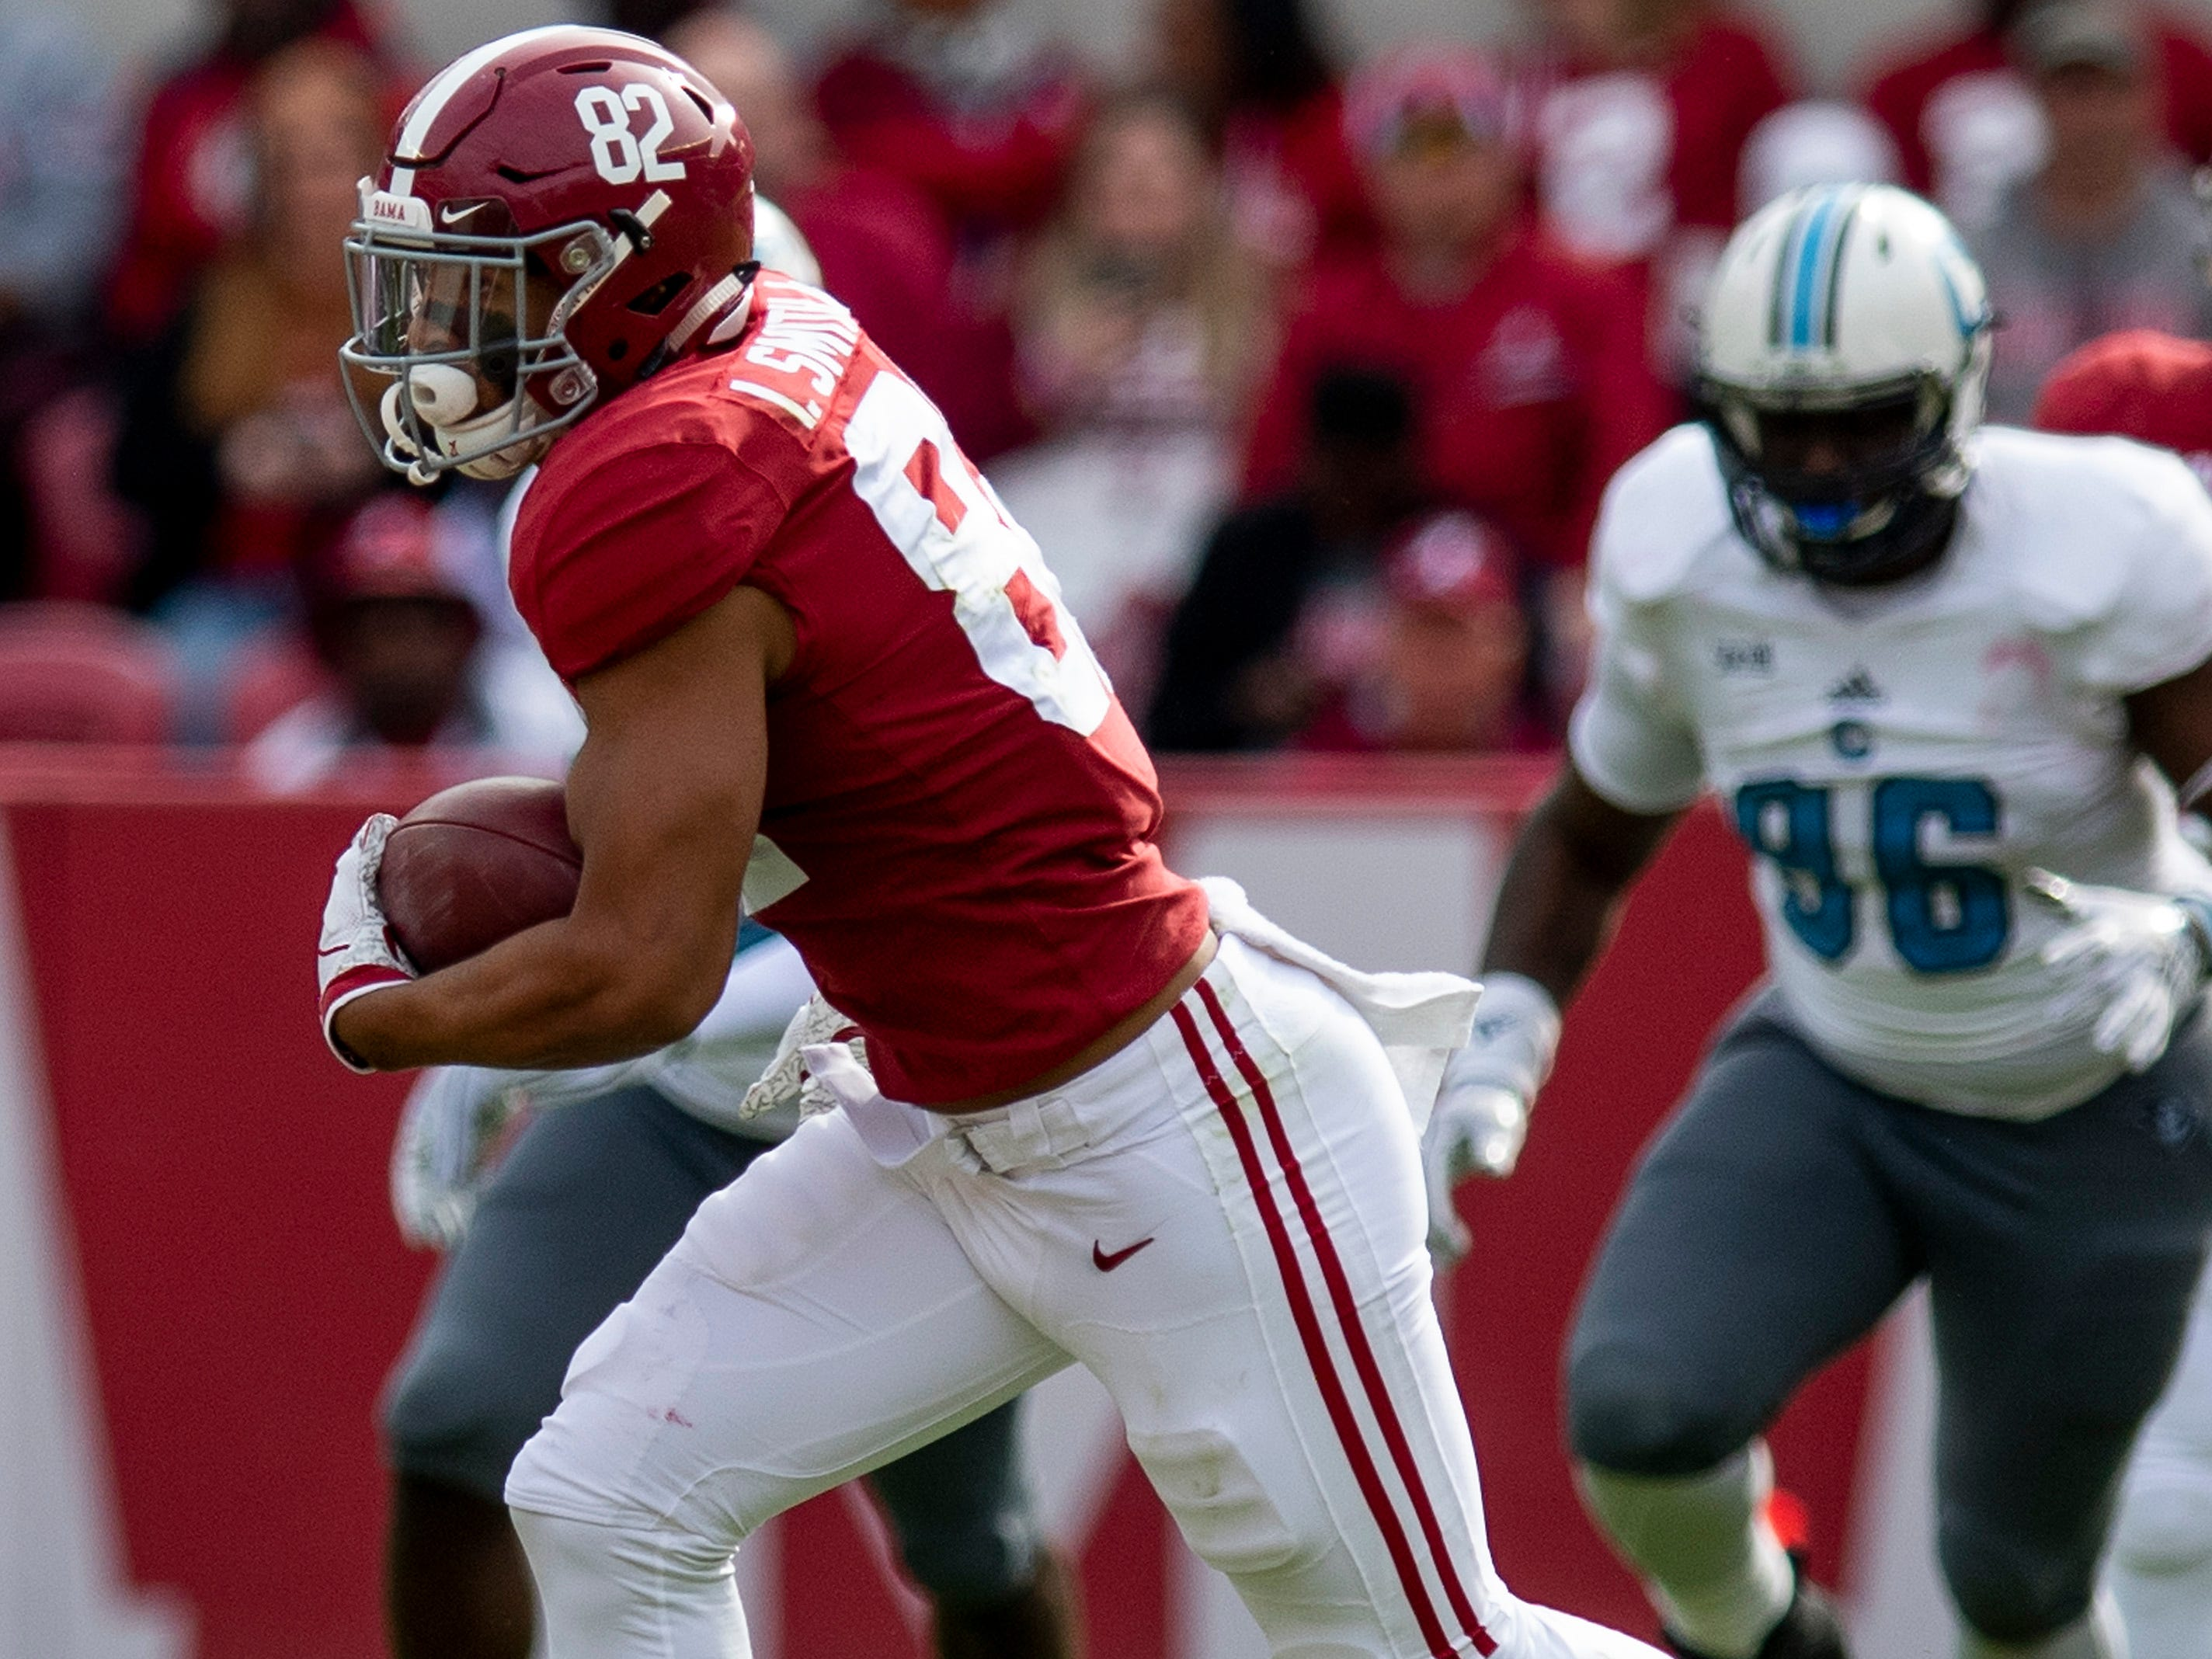 Alabama tight end Irv Smith Jr. (82) carries for a touchdown against The Citadel in second half action at Bryant-Denny Stadium in Tuscaloosa, Ala., on Saturday November 17, 2018.